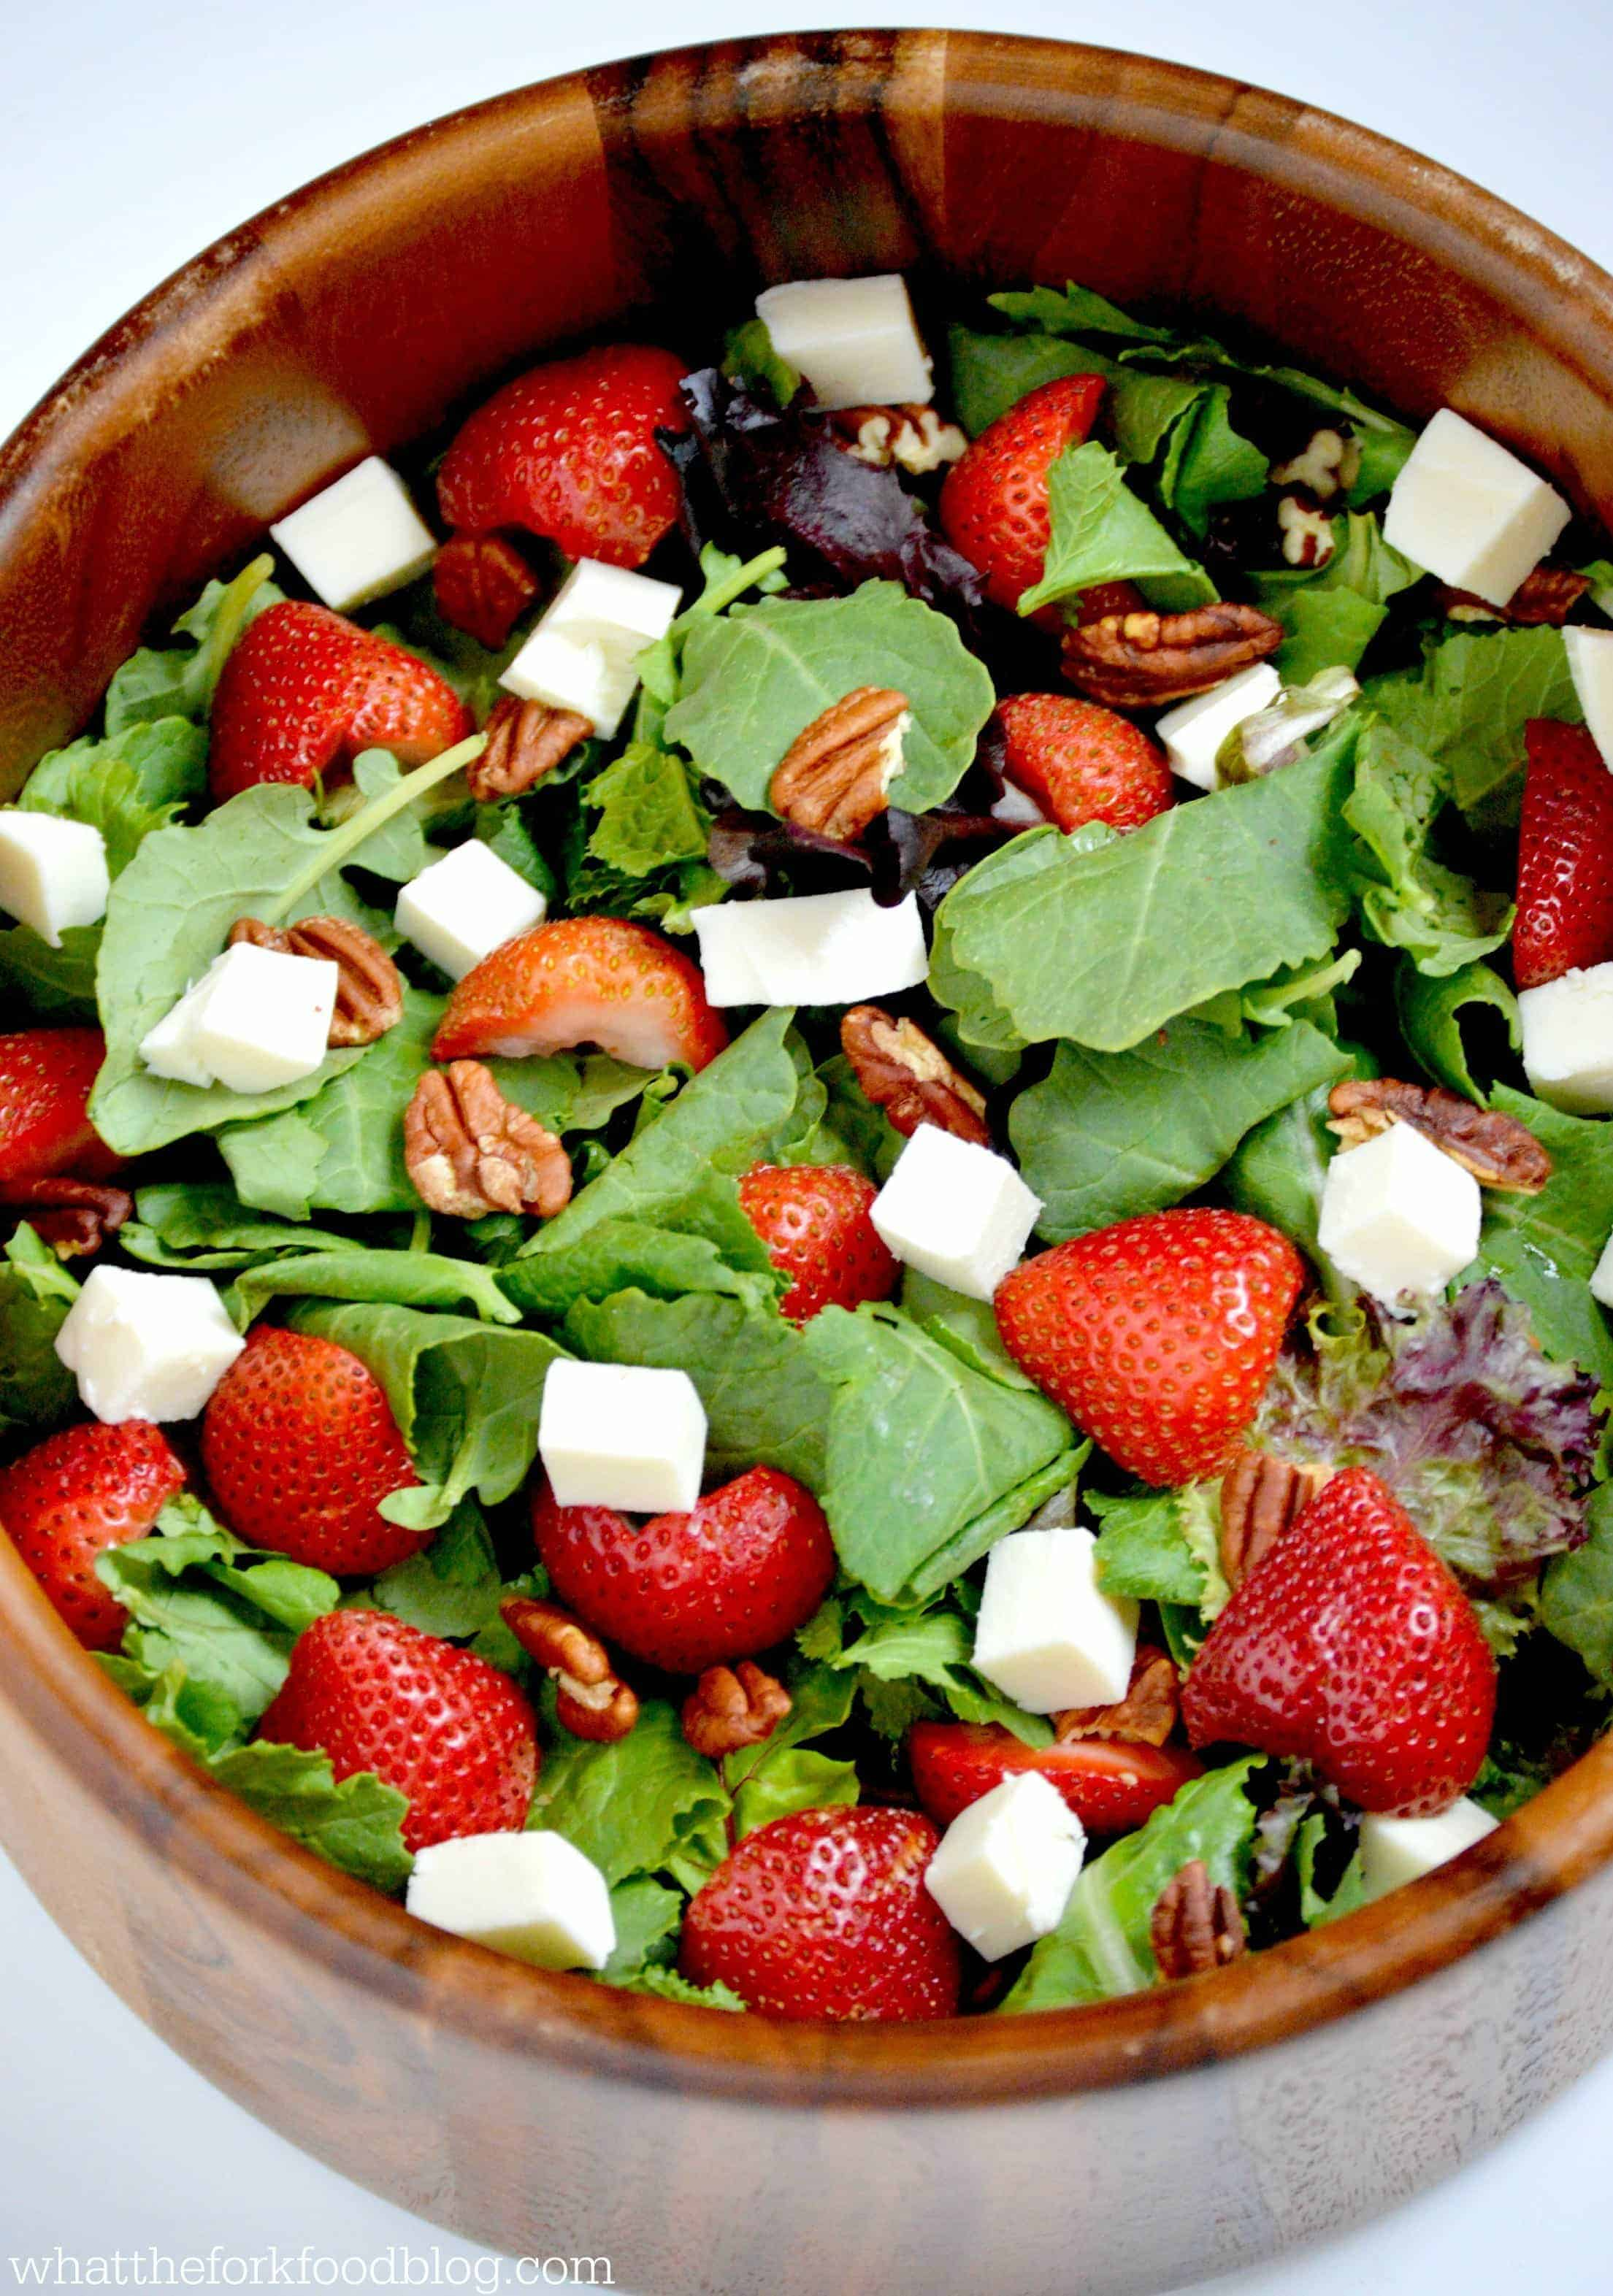 Strawberry Kale Salad from What The Fork Food Blog